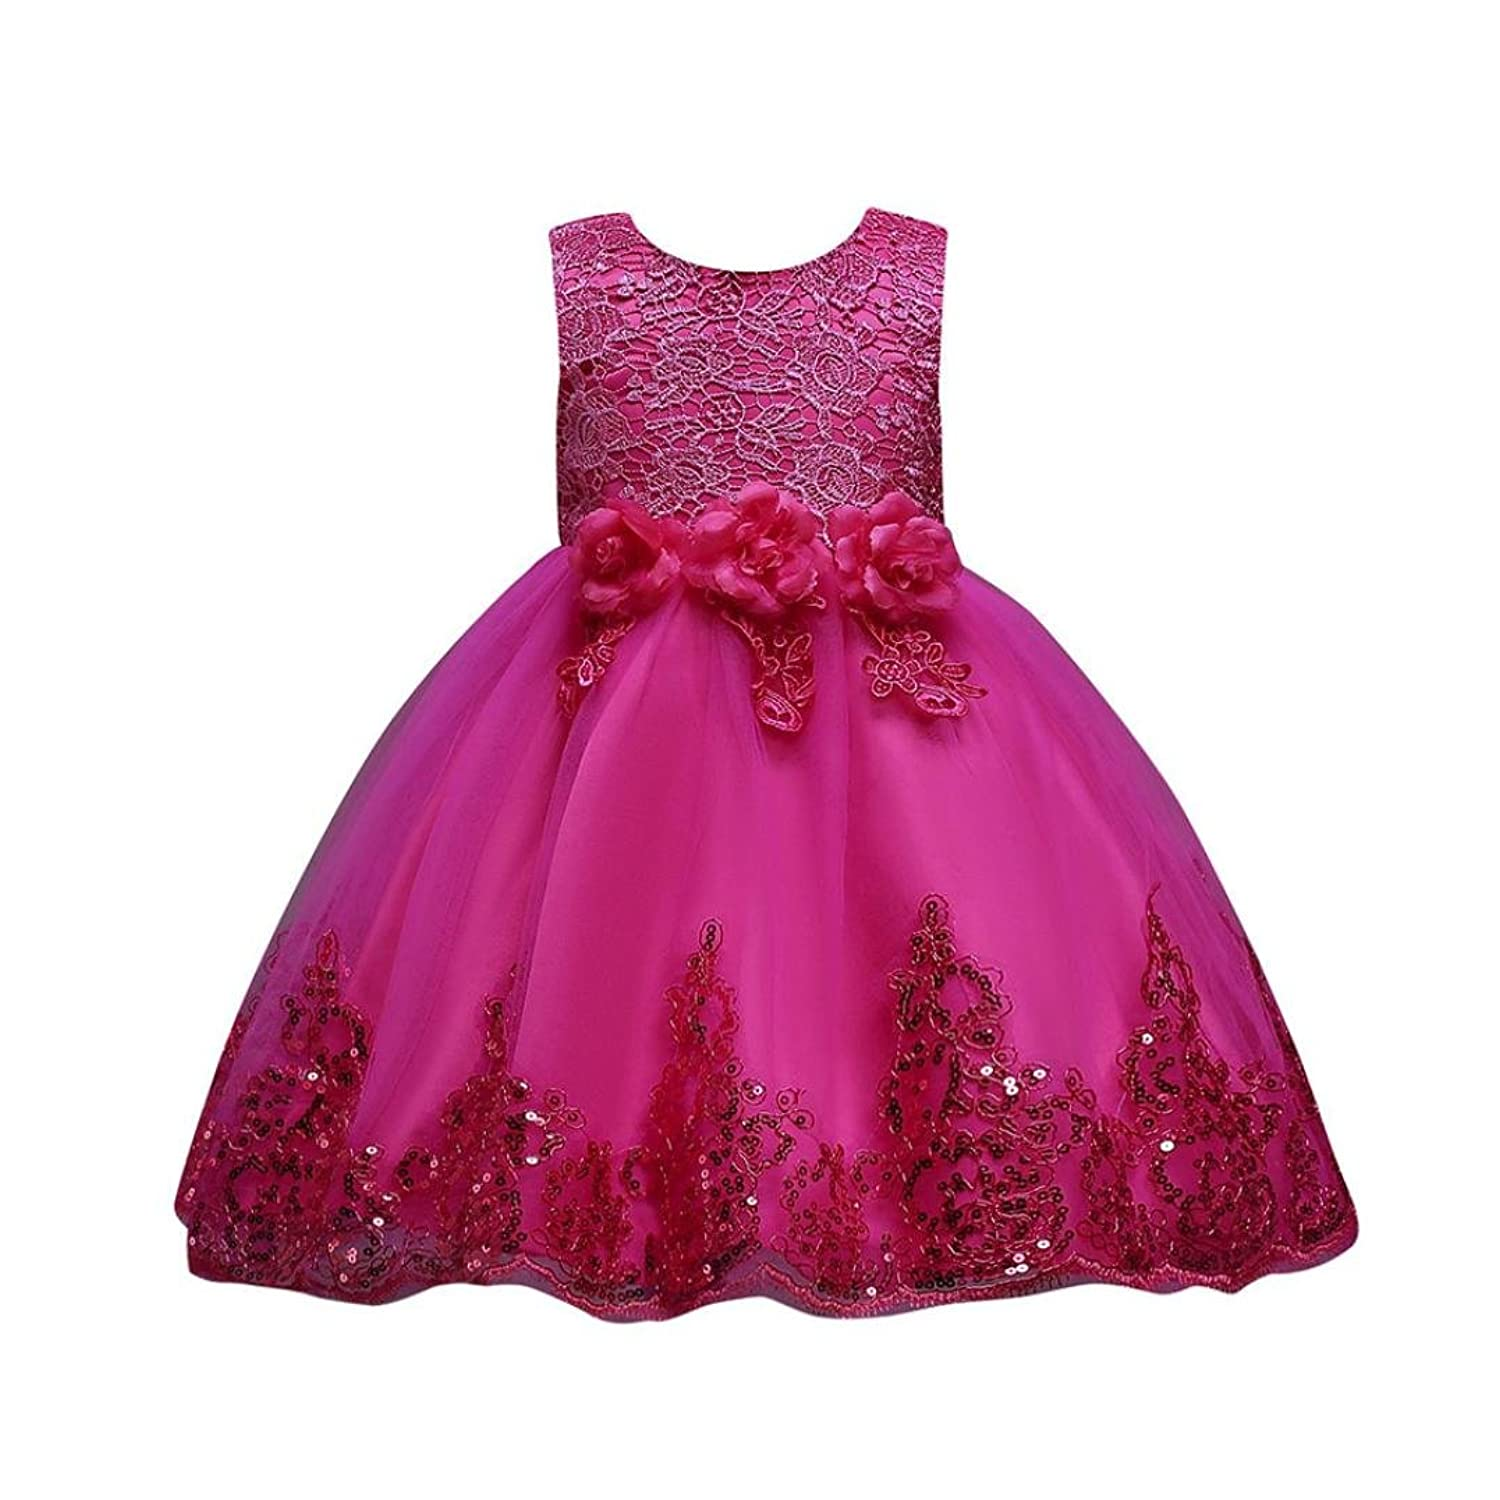 557131b0 Features 】- Princess Gown Dresses Combines Many Elements,A-Line,O-neck ,  Sleeveless ...